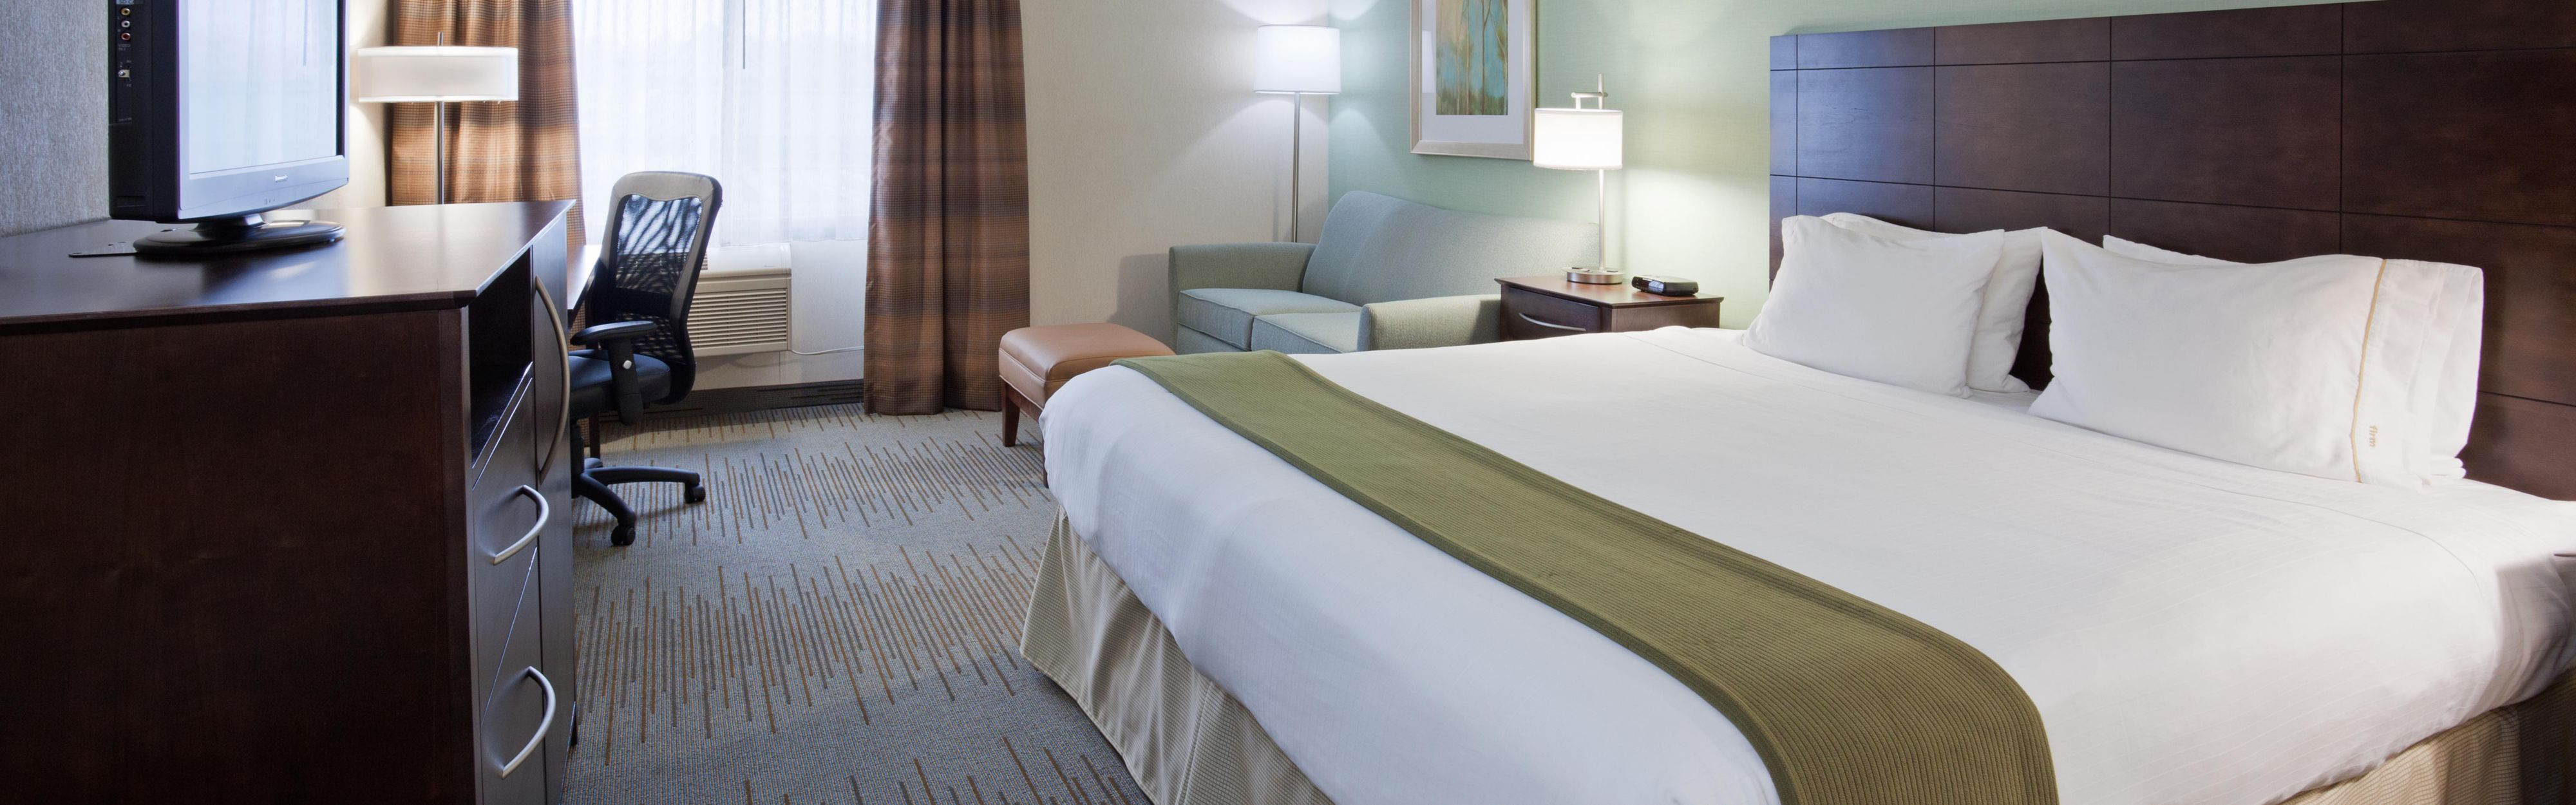 Holiday Inn Express & Suites St. Paul Ne (Vadnais Heights) image 1